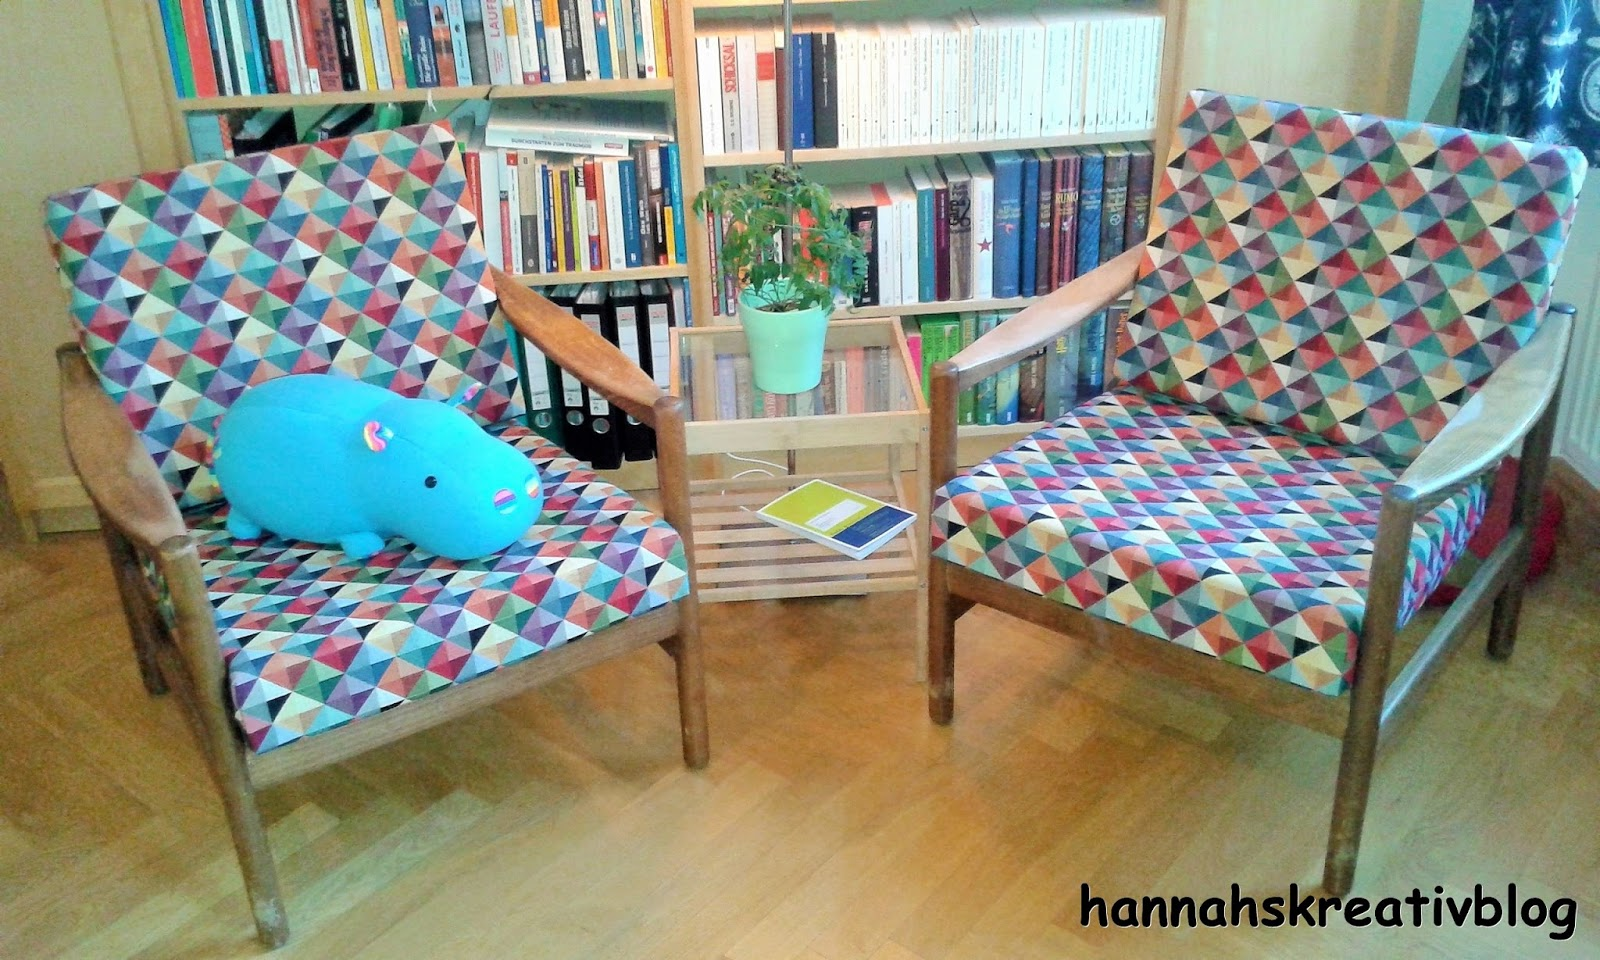 Upcycling Sessel Hannahs Kreativblog Sessel Upcycling